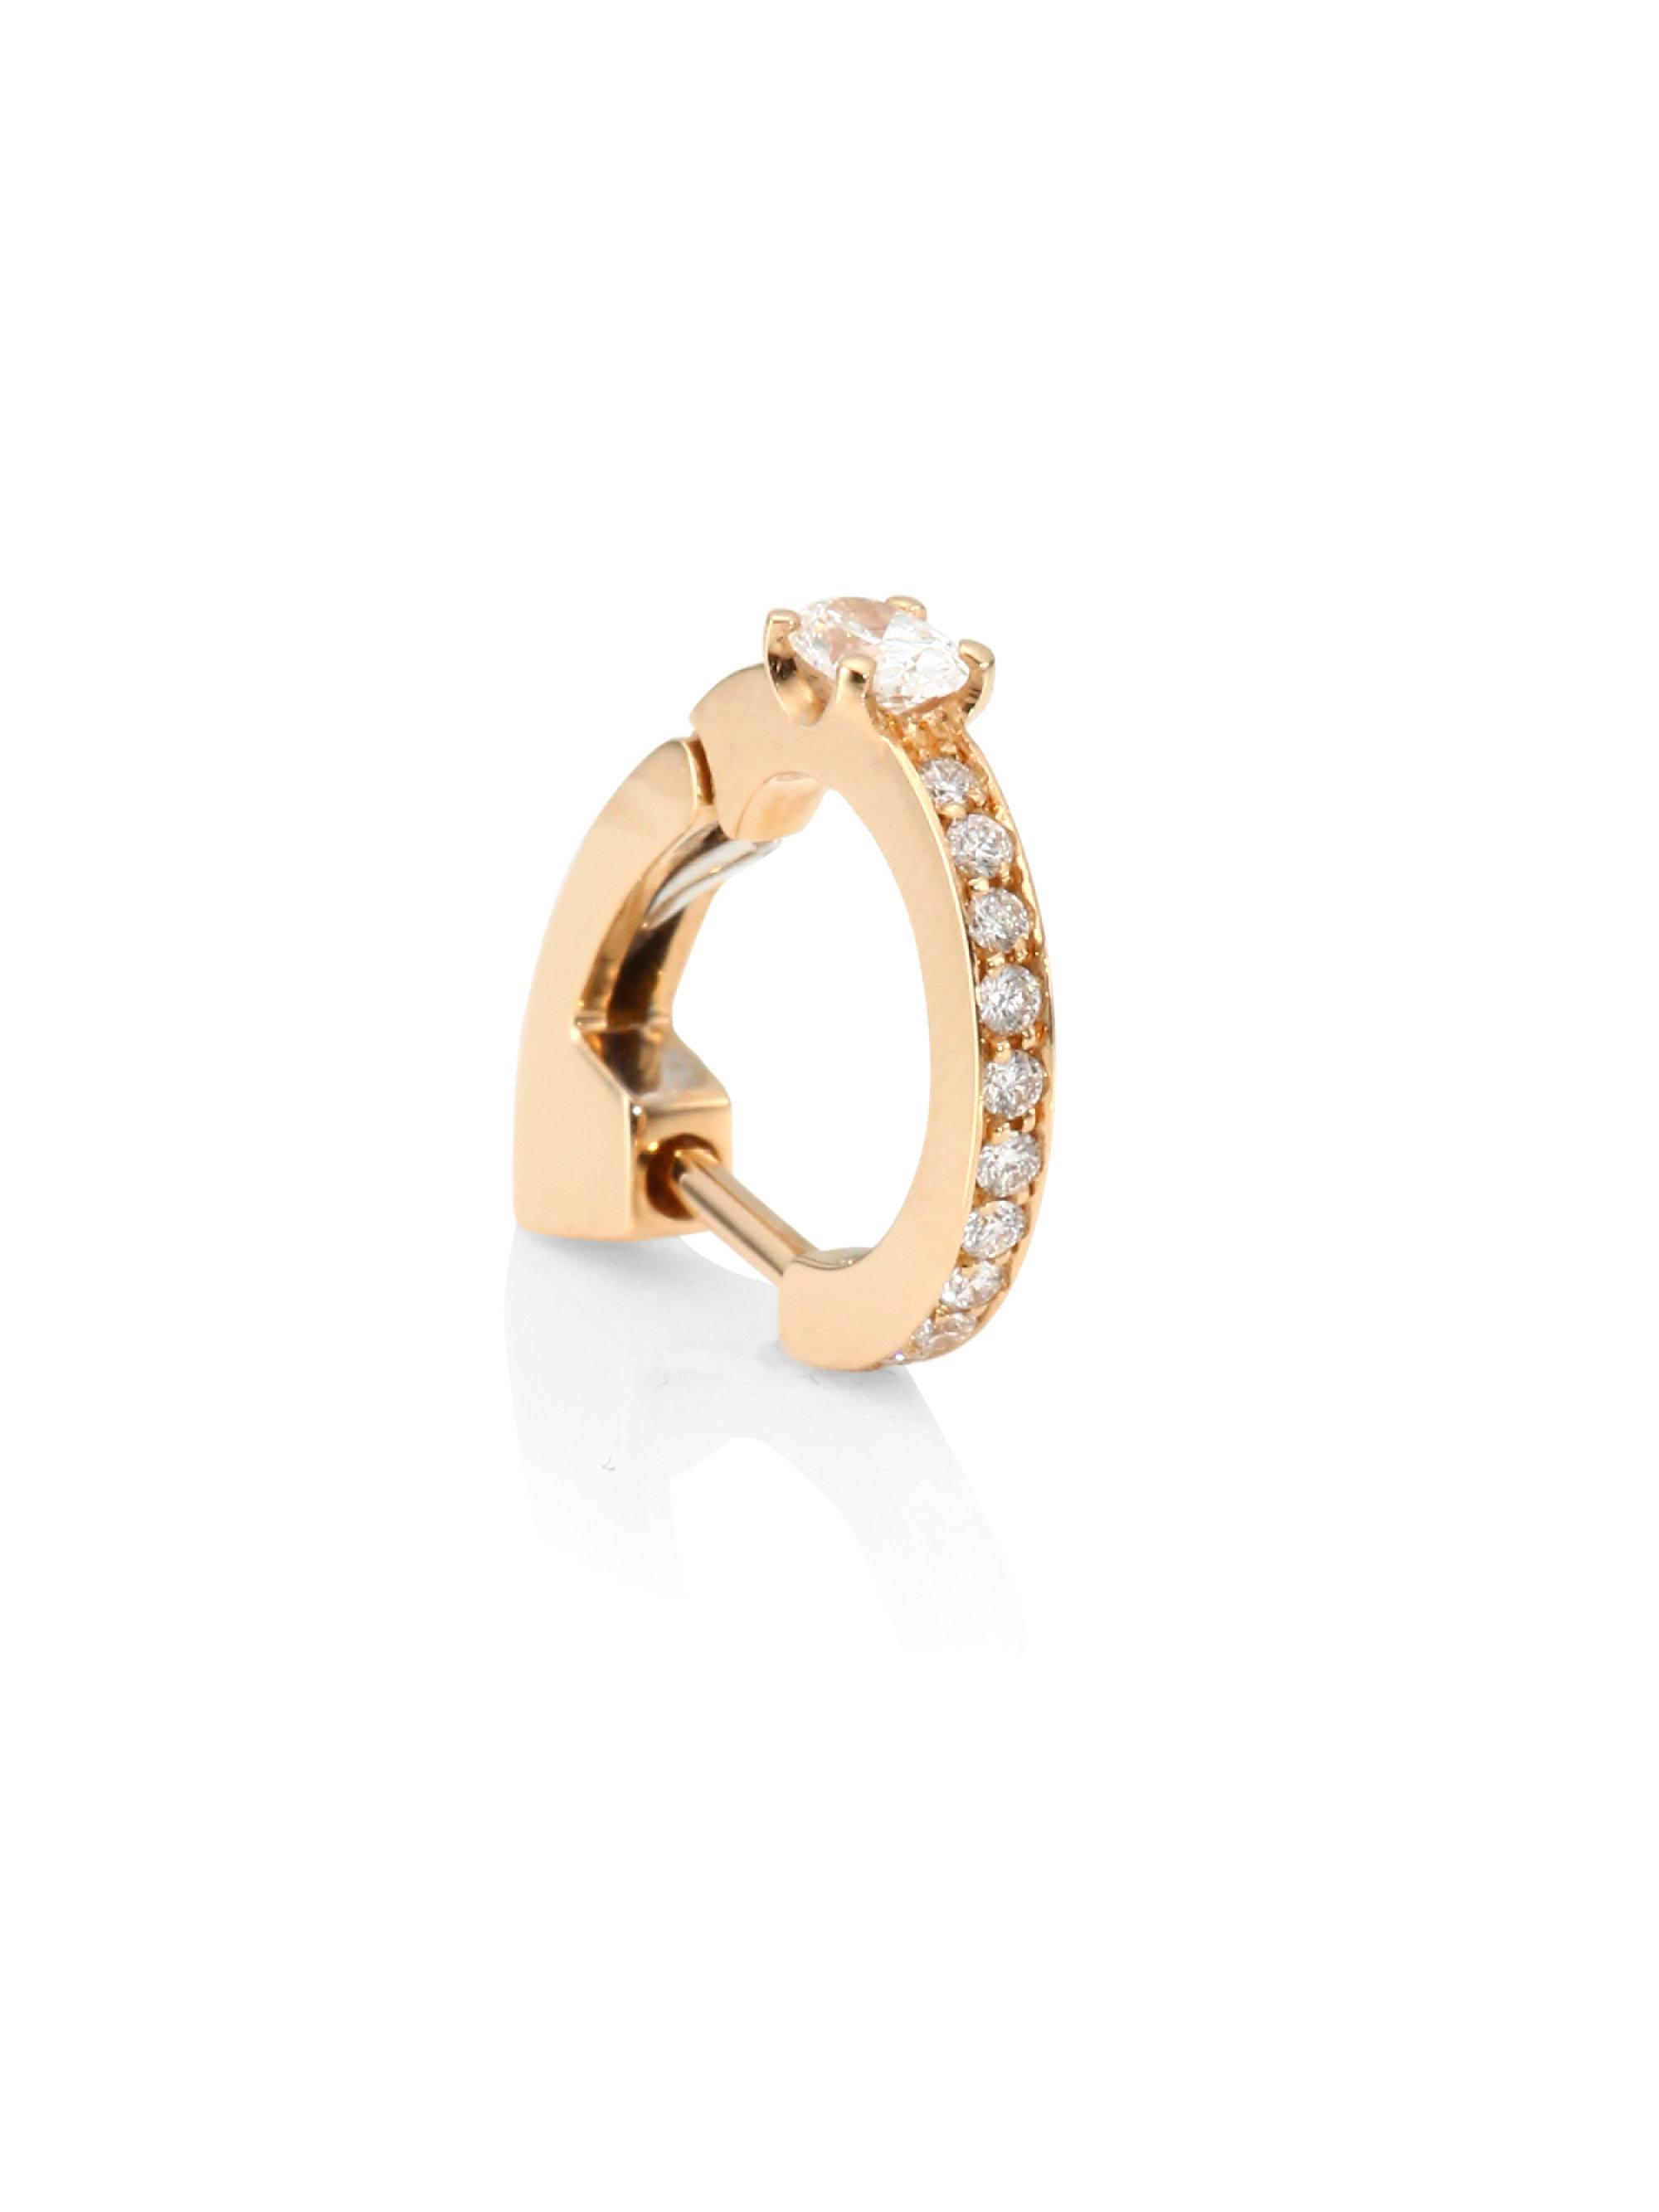 Repossi Pavé Diamond Staple Earring in 18K Rose Gold